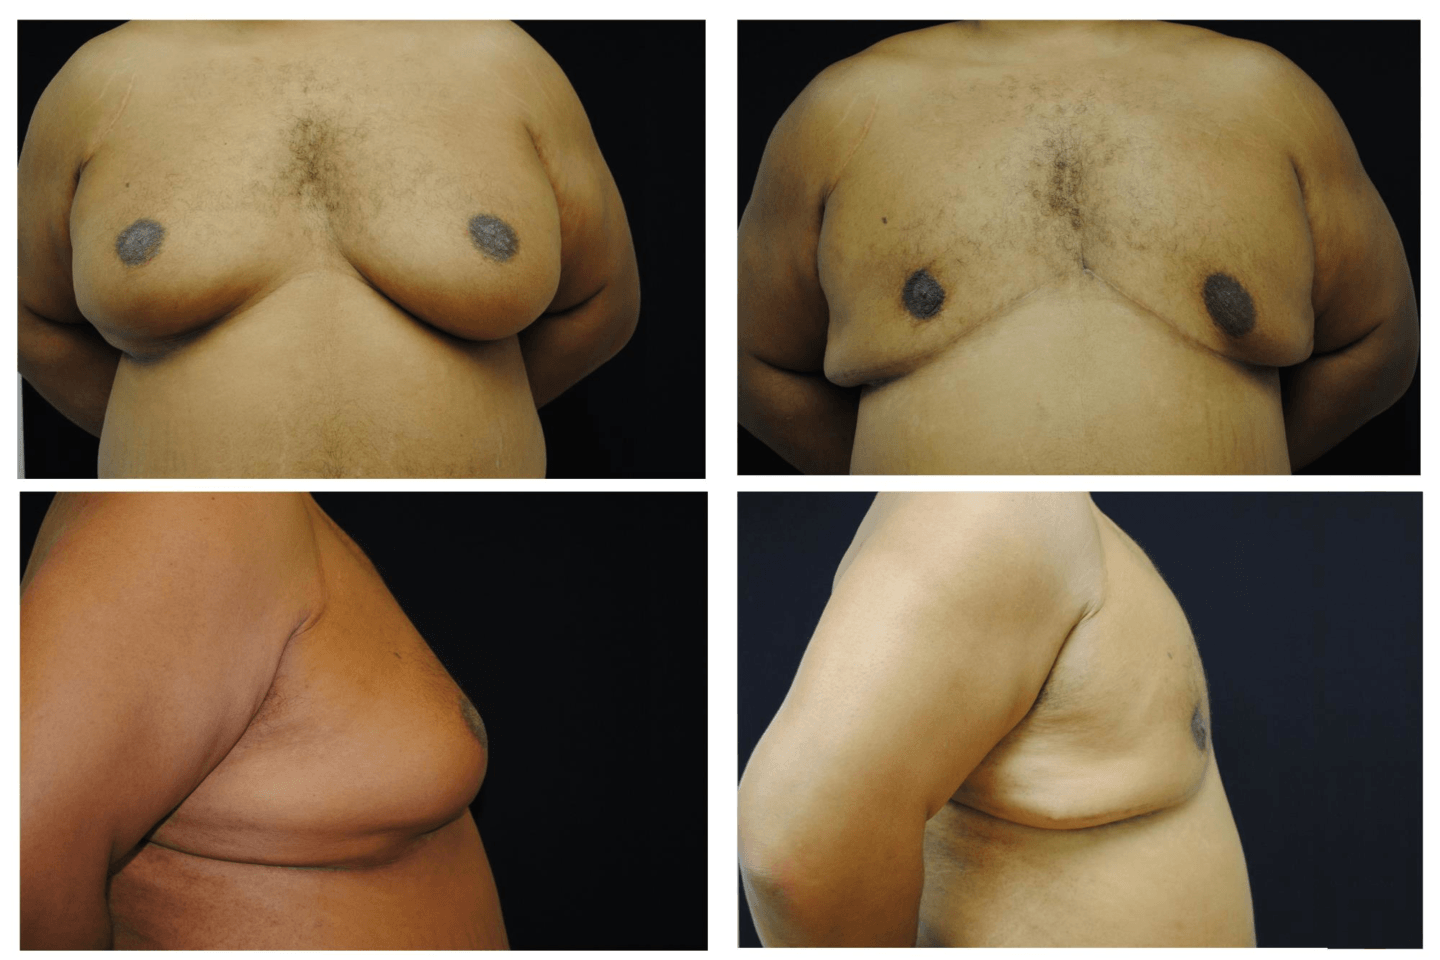 Case_721_-_Gynecomastia_(Male_Breast_Reduction)